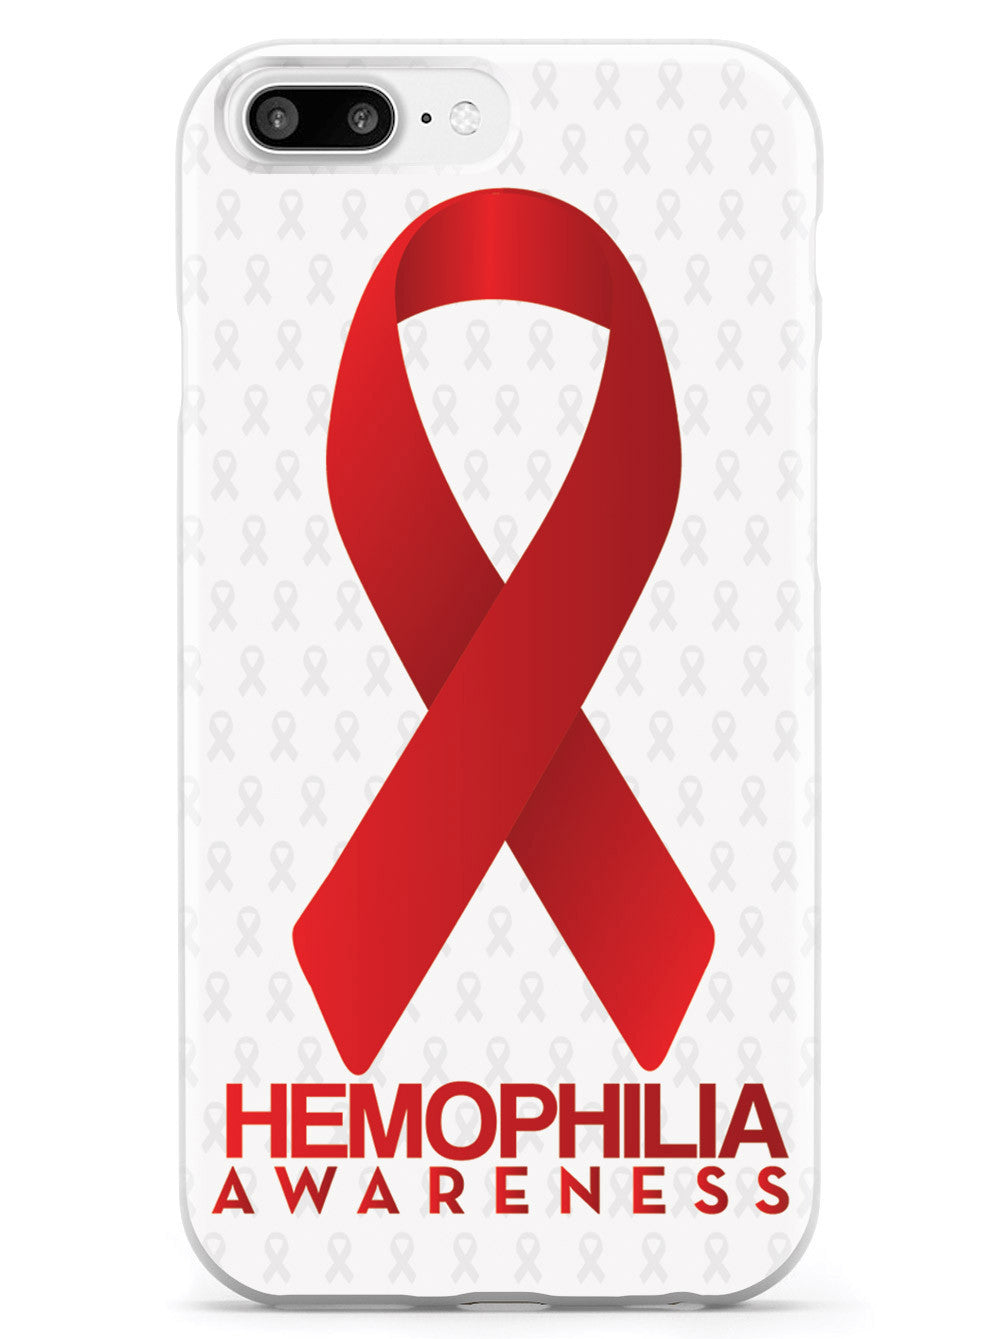 Hemophilia - Awareness Ribbon - White Case